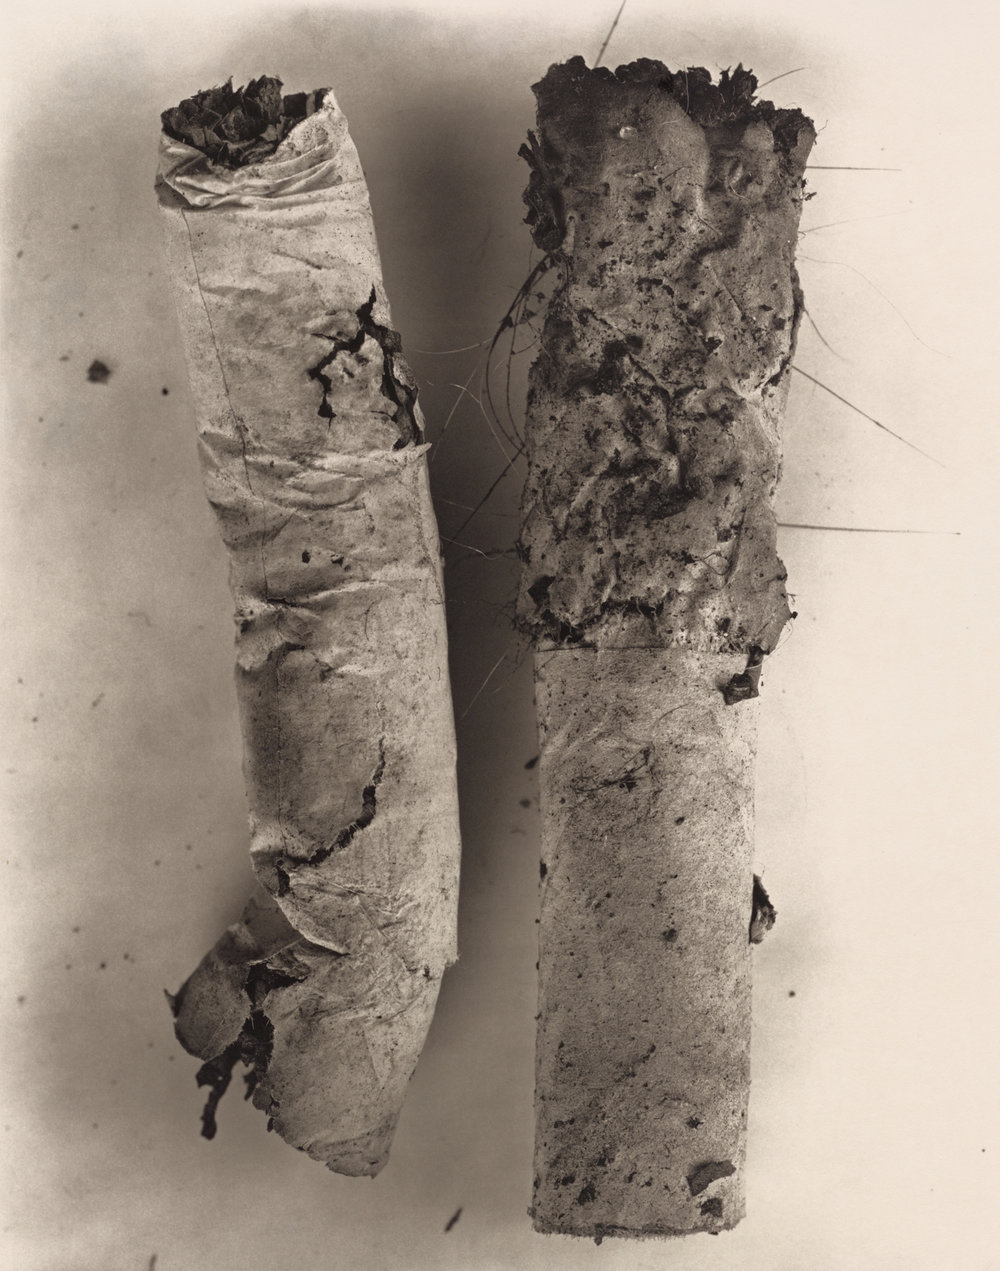 Cigarette No. 17 , New York, 1972 Platinum-palladium print © The Irving Penn Foundation